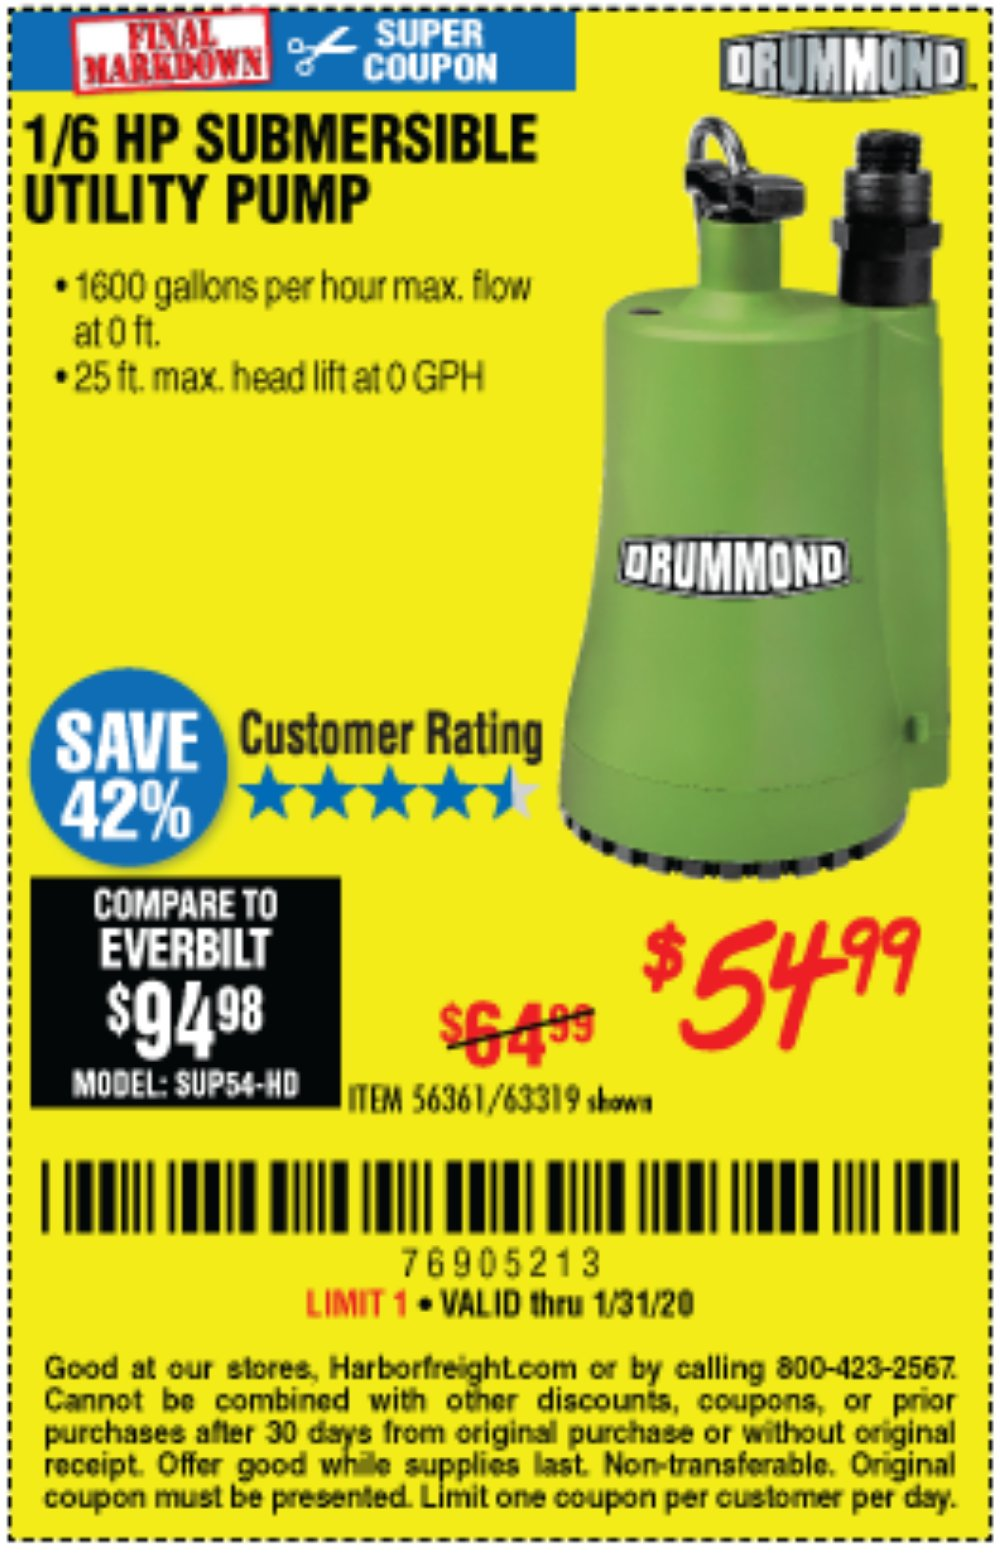 Harbor Freight Coupon, HF Coupons - 1/6 Hp Submersible Utility Pump